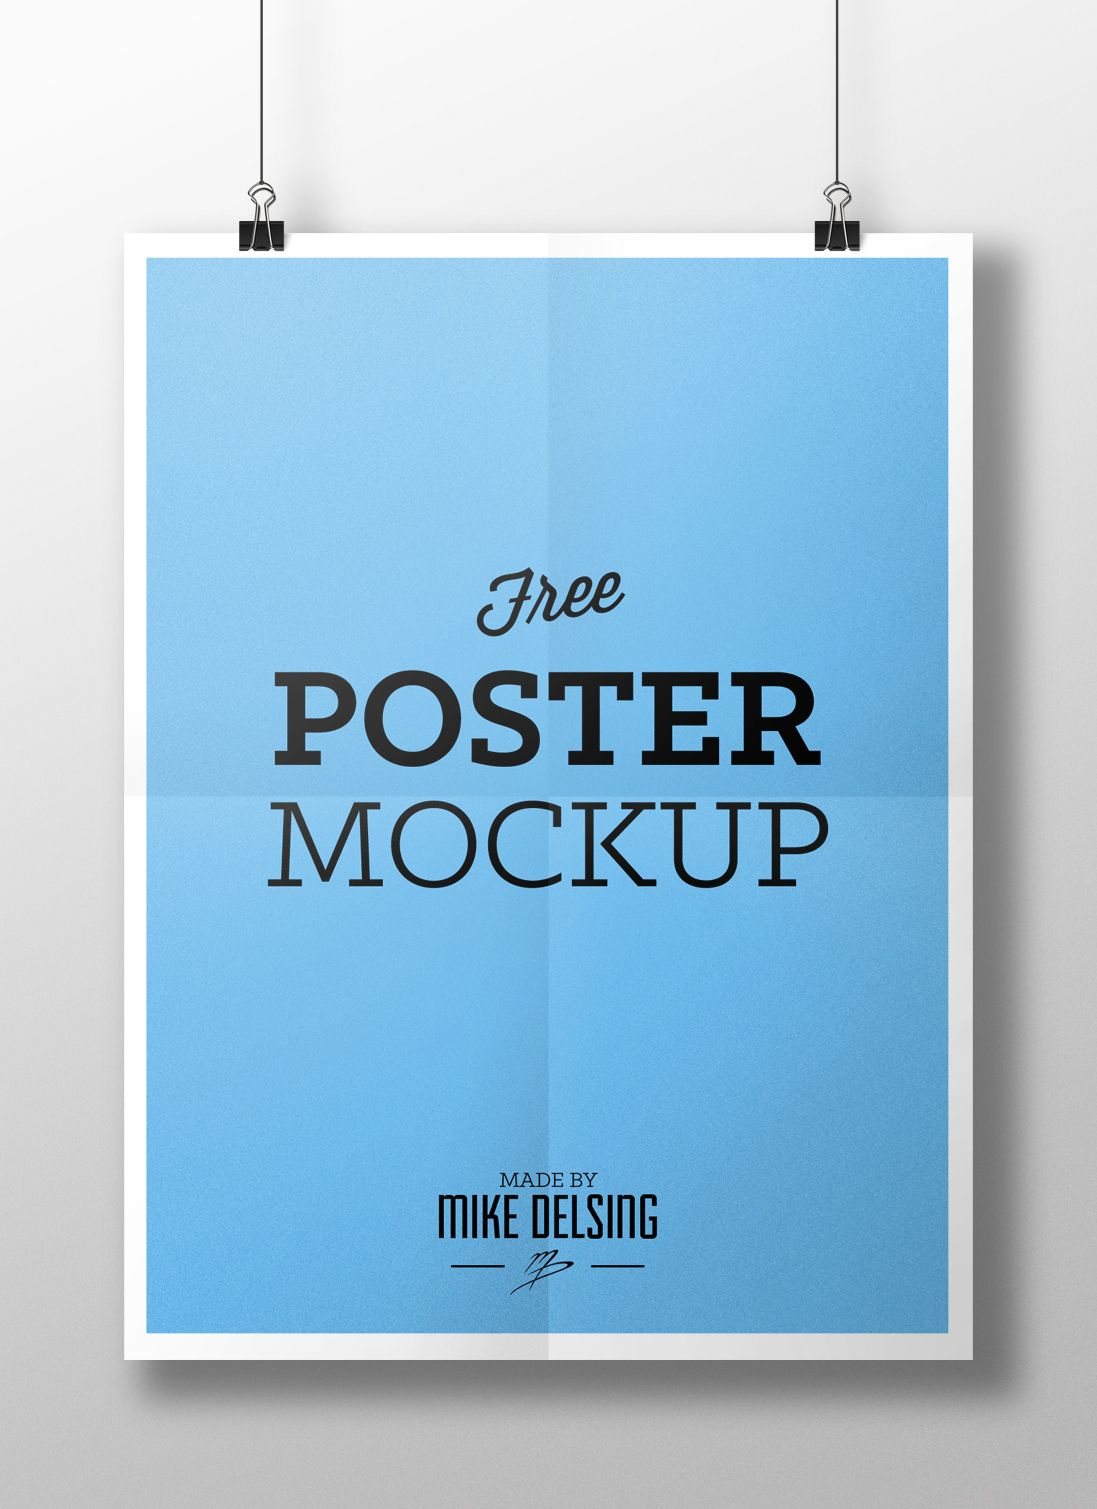 free poster mockup psd templates for your designs mockup behance